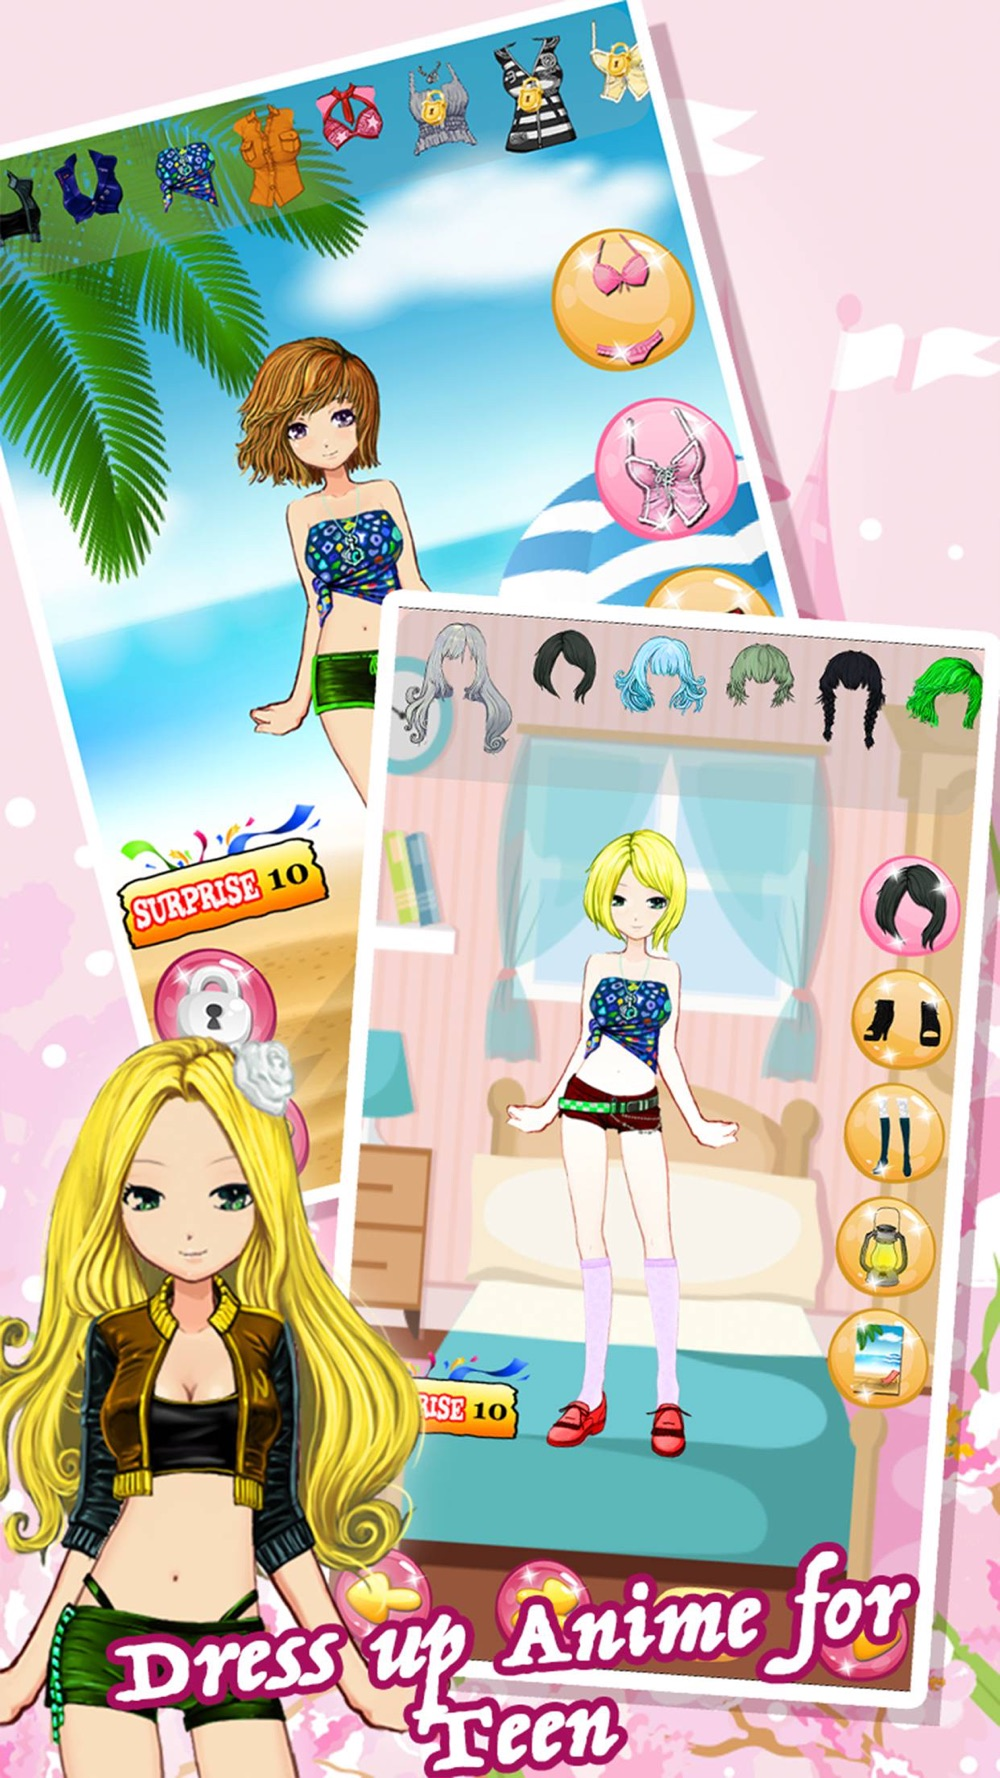 Dress Up Games For Teens Girls & Kids Free – the pretty princess and cute anime beauty salon makeover for girl